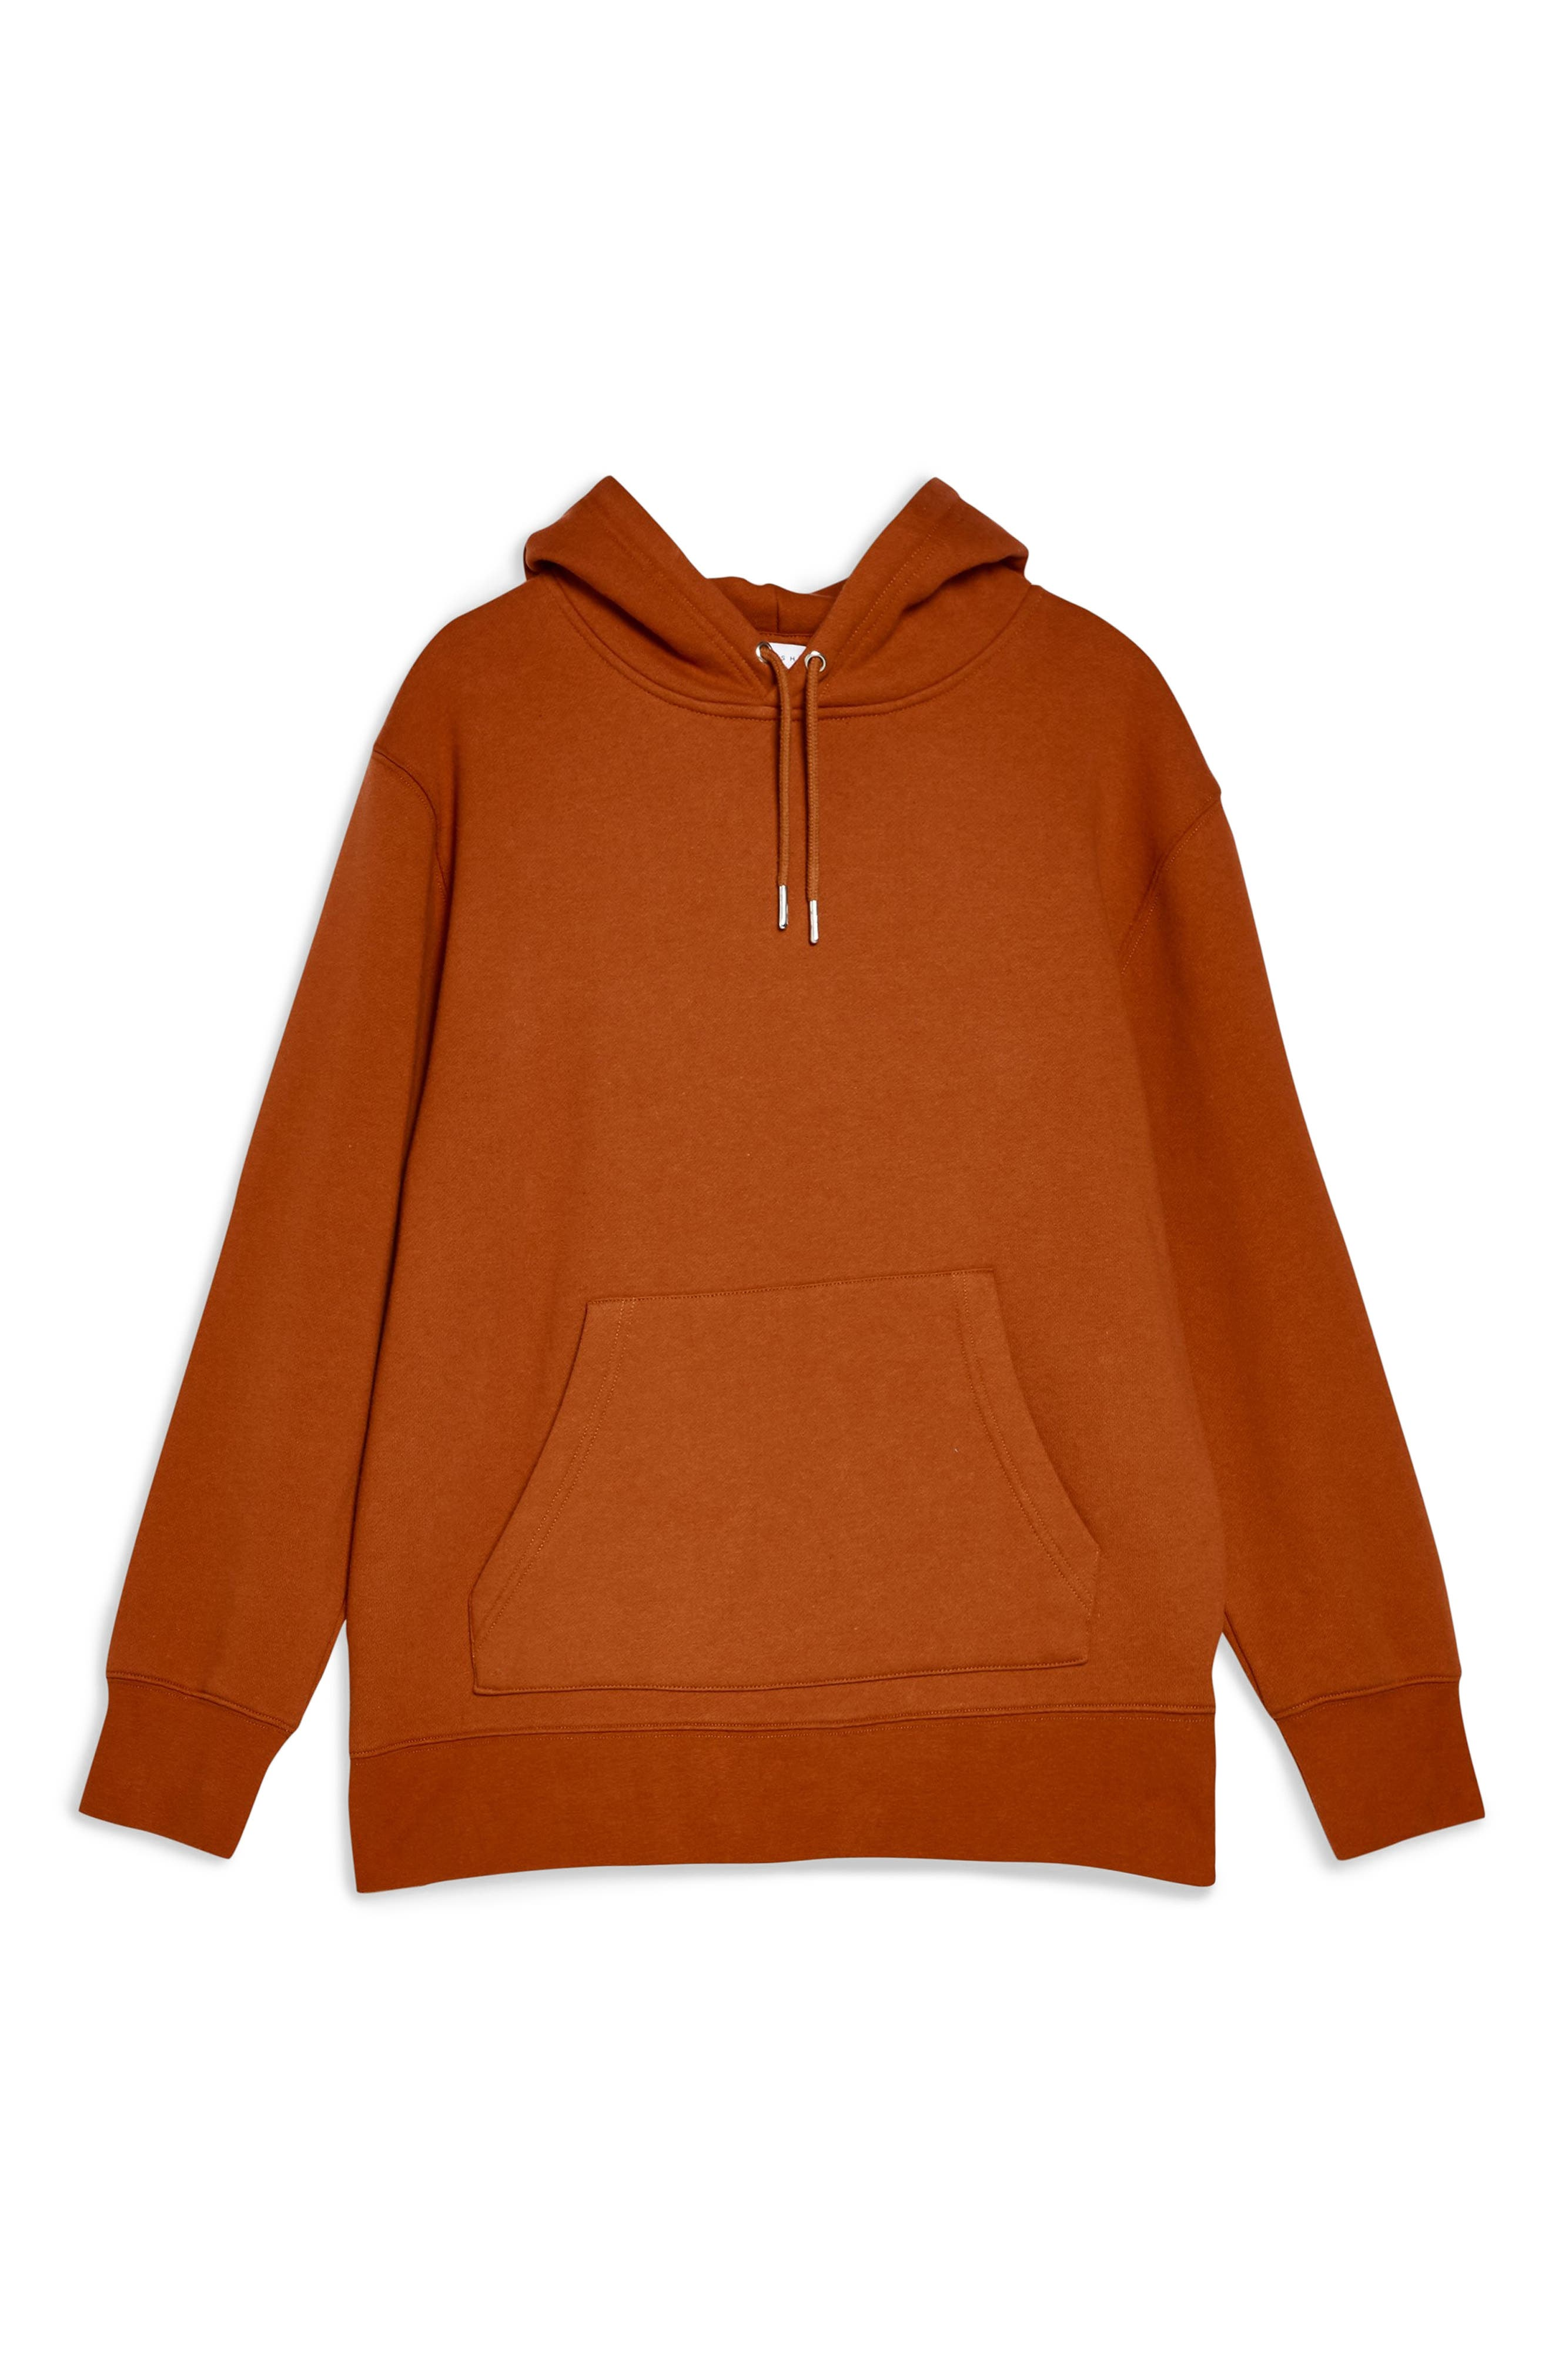 TOPSHOP, Relaxed Hooded Sweatshirt, Alternate thumbnail 4, color, RUST